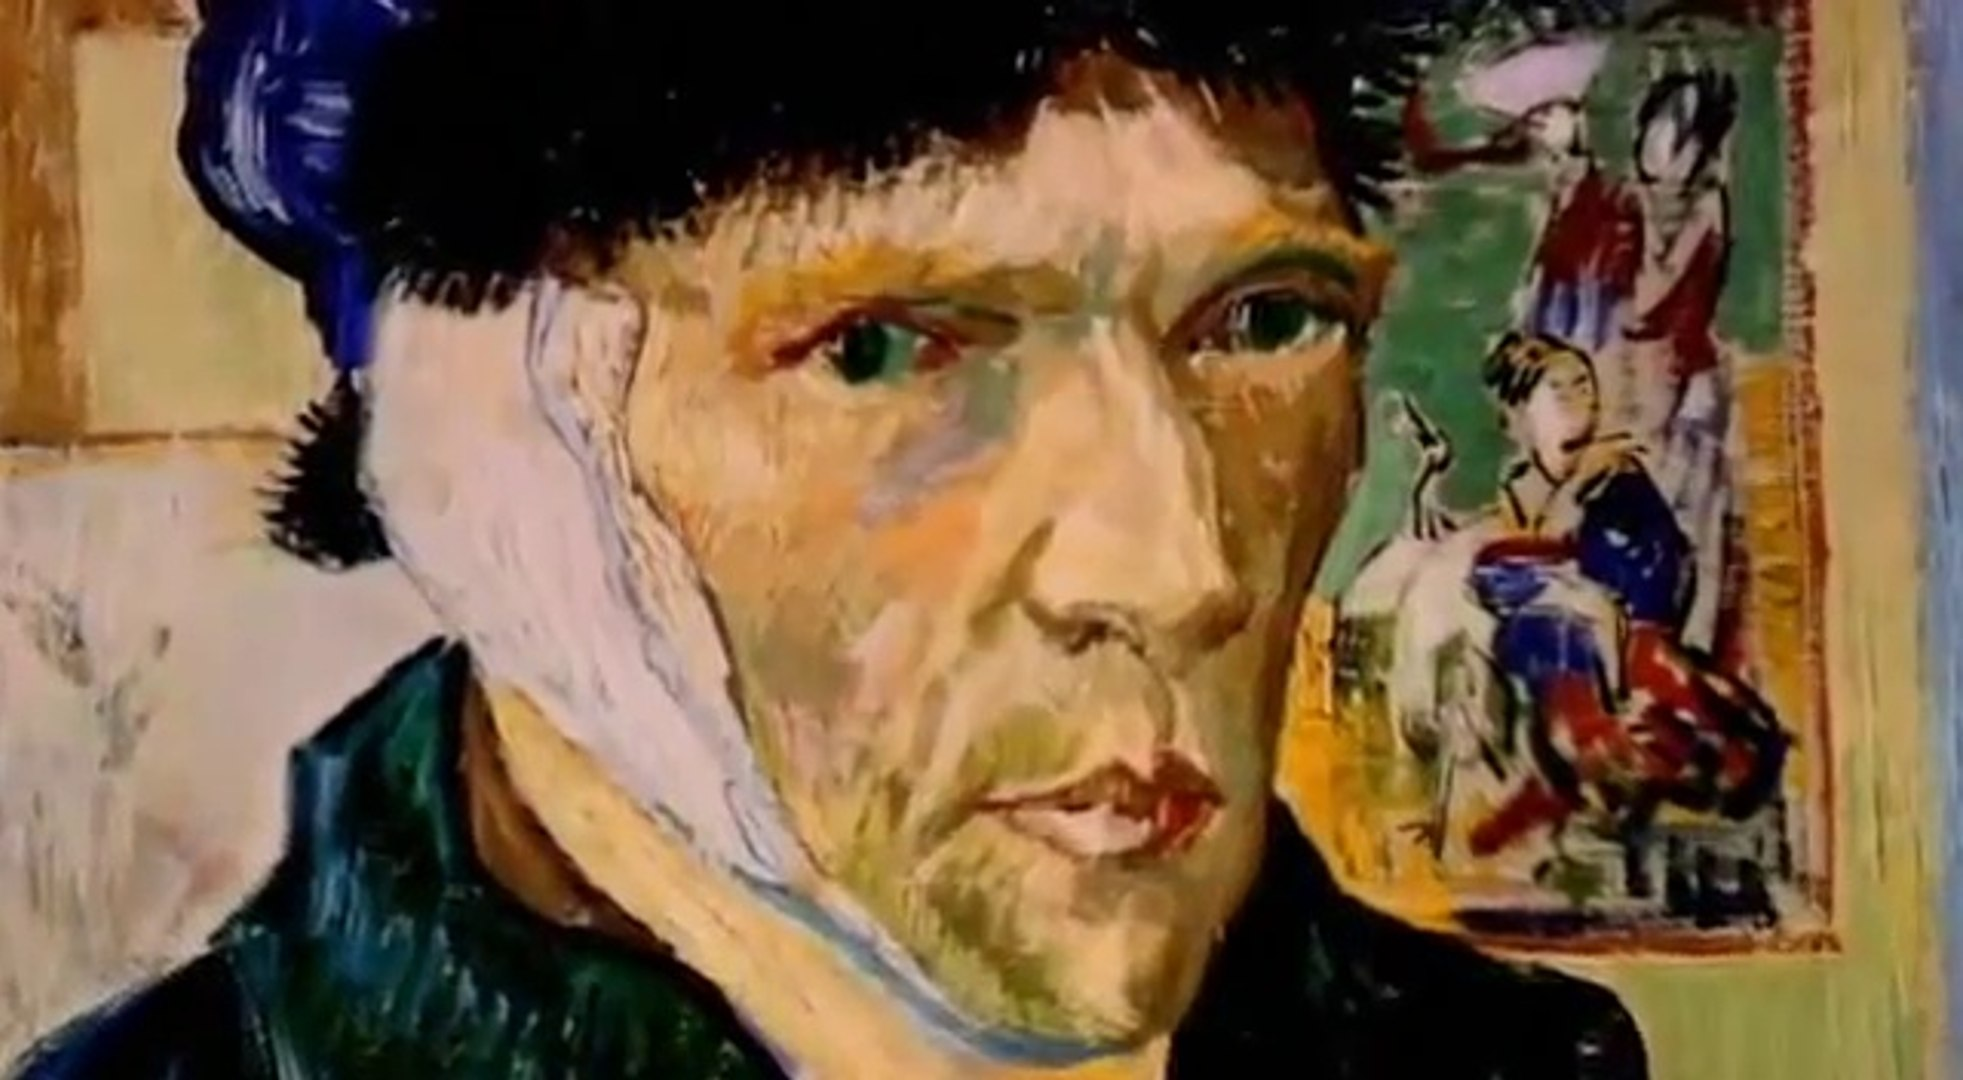 THE POWER OF ART - VINCENT VAN GOGH - BBC - Discovery History Biography Documentaries (full document